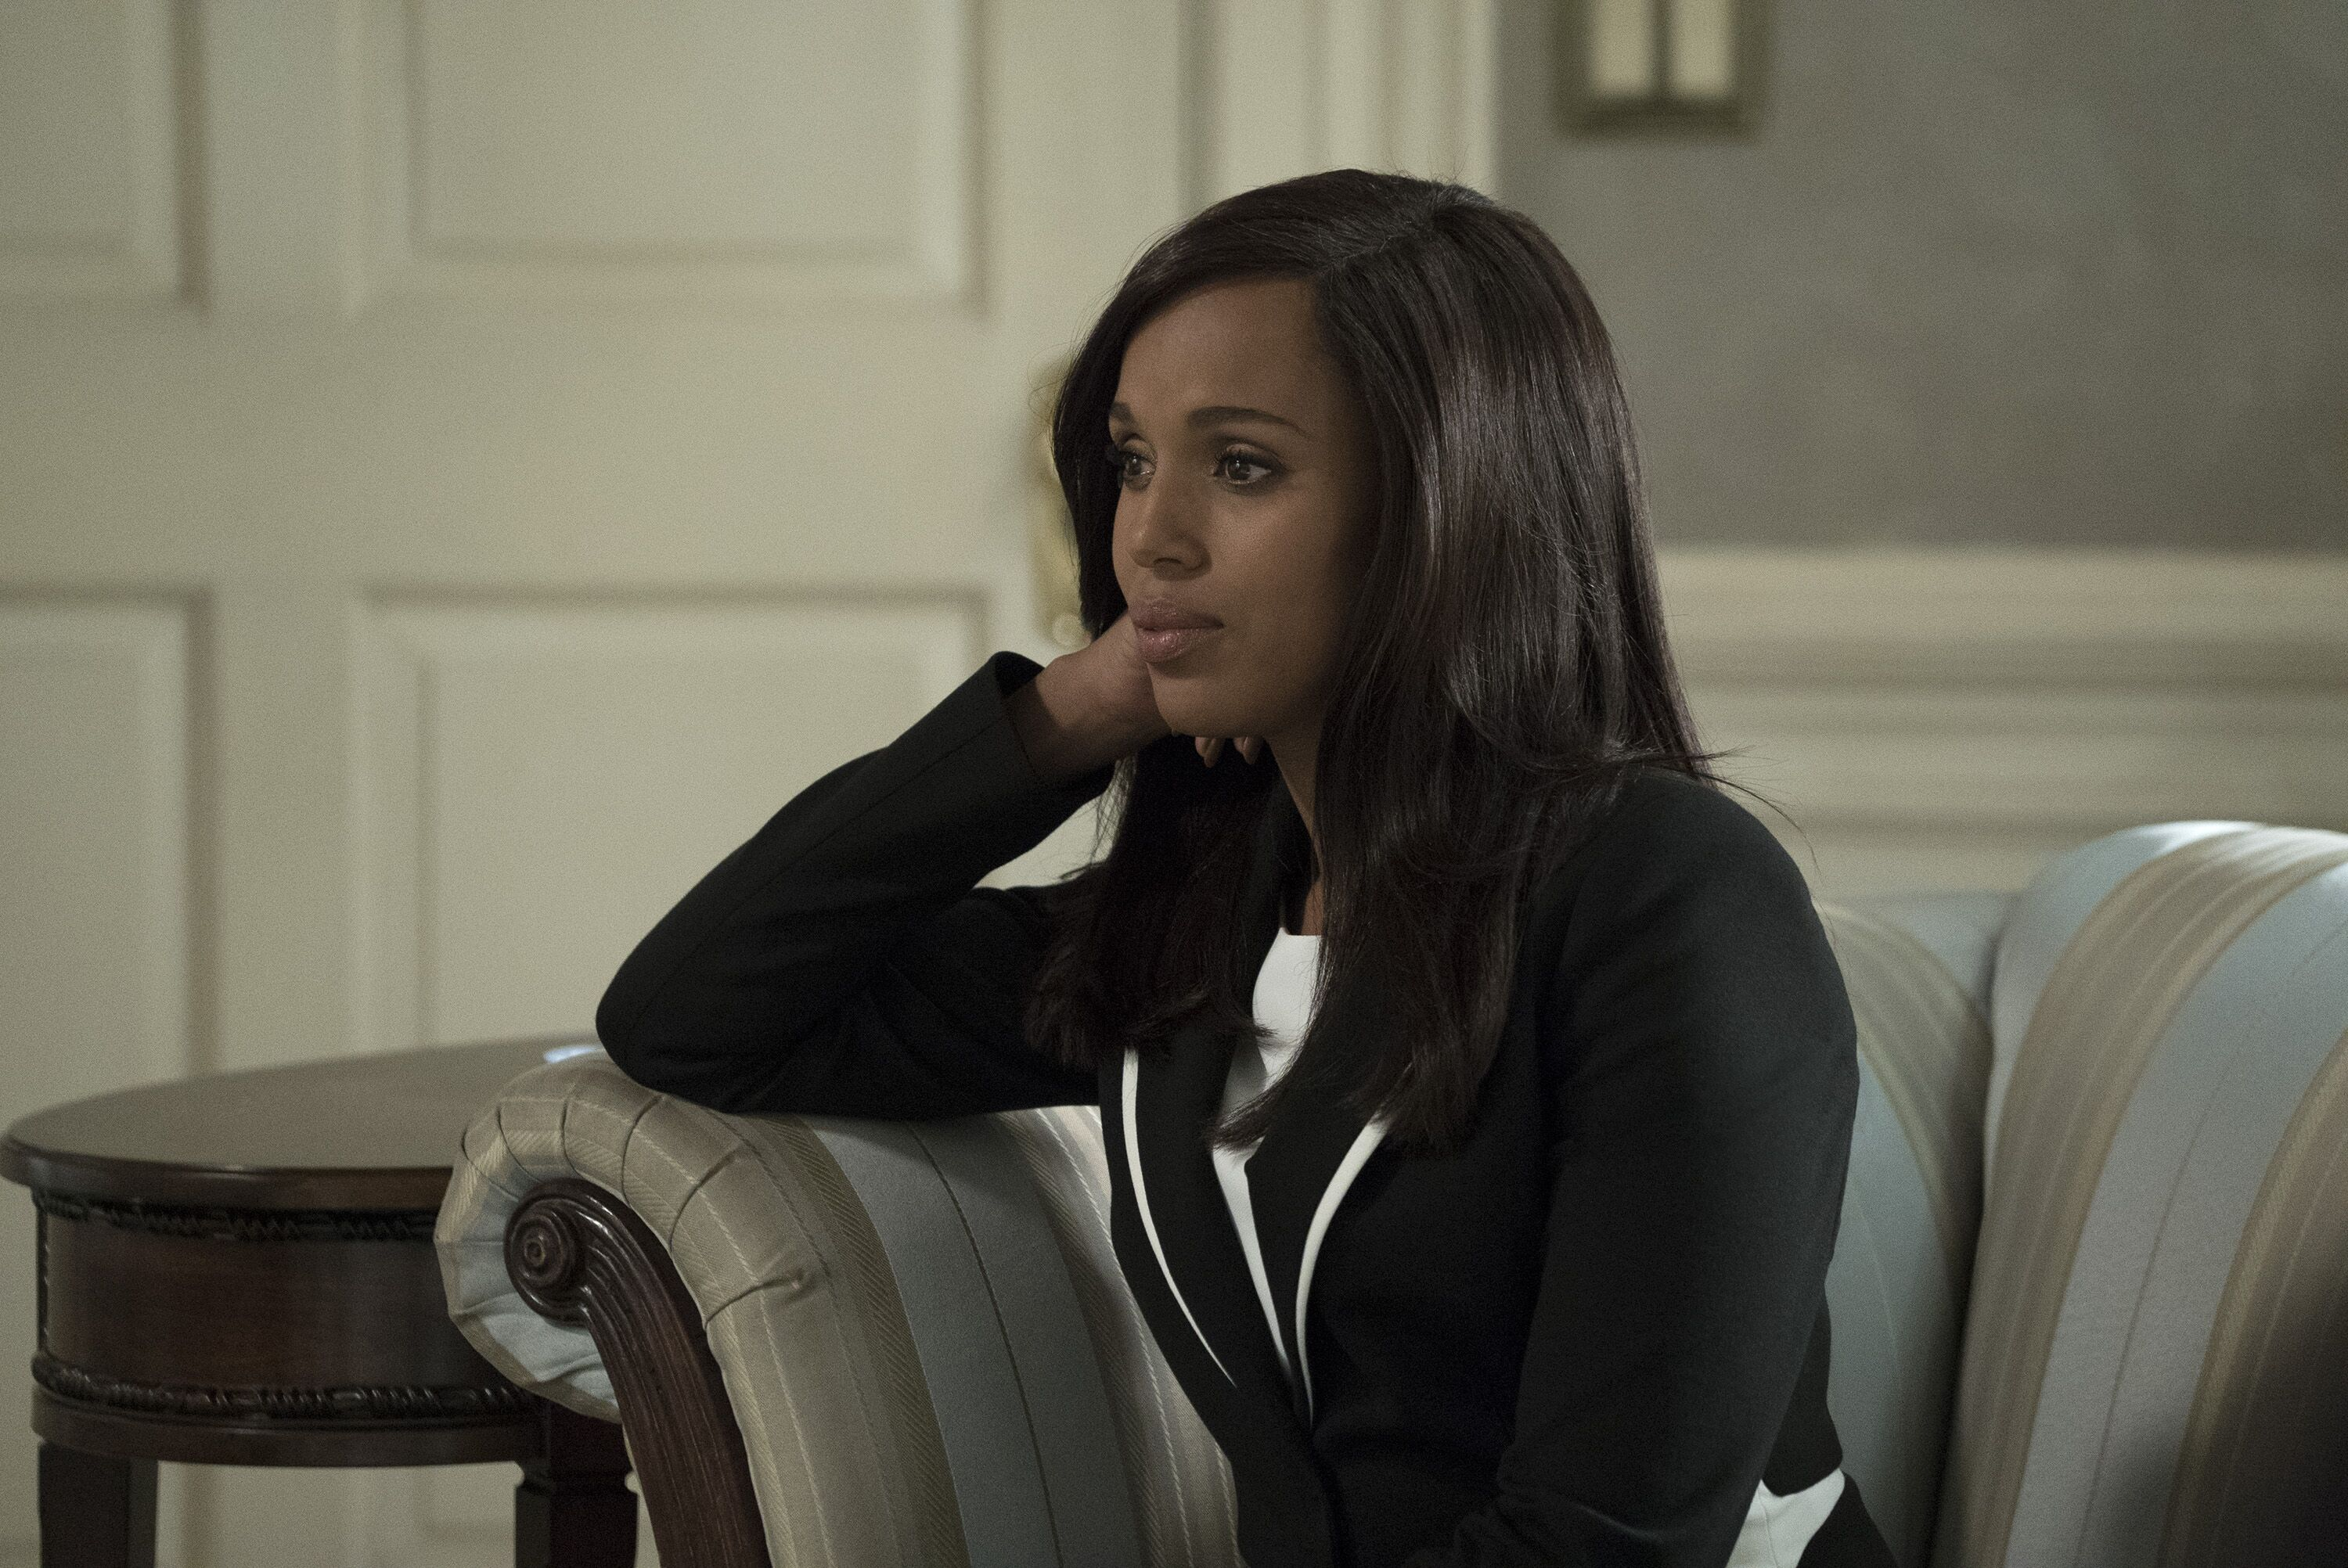 This Thursday Night Abcs Believed Tgit Dramas Make Their Way Back To Its Fall Lineup But Will Scandal Return Alongside Greys Anatomy And How To Get Away